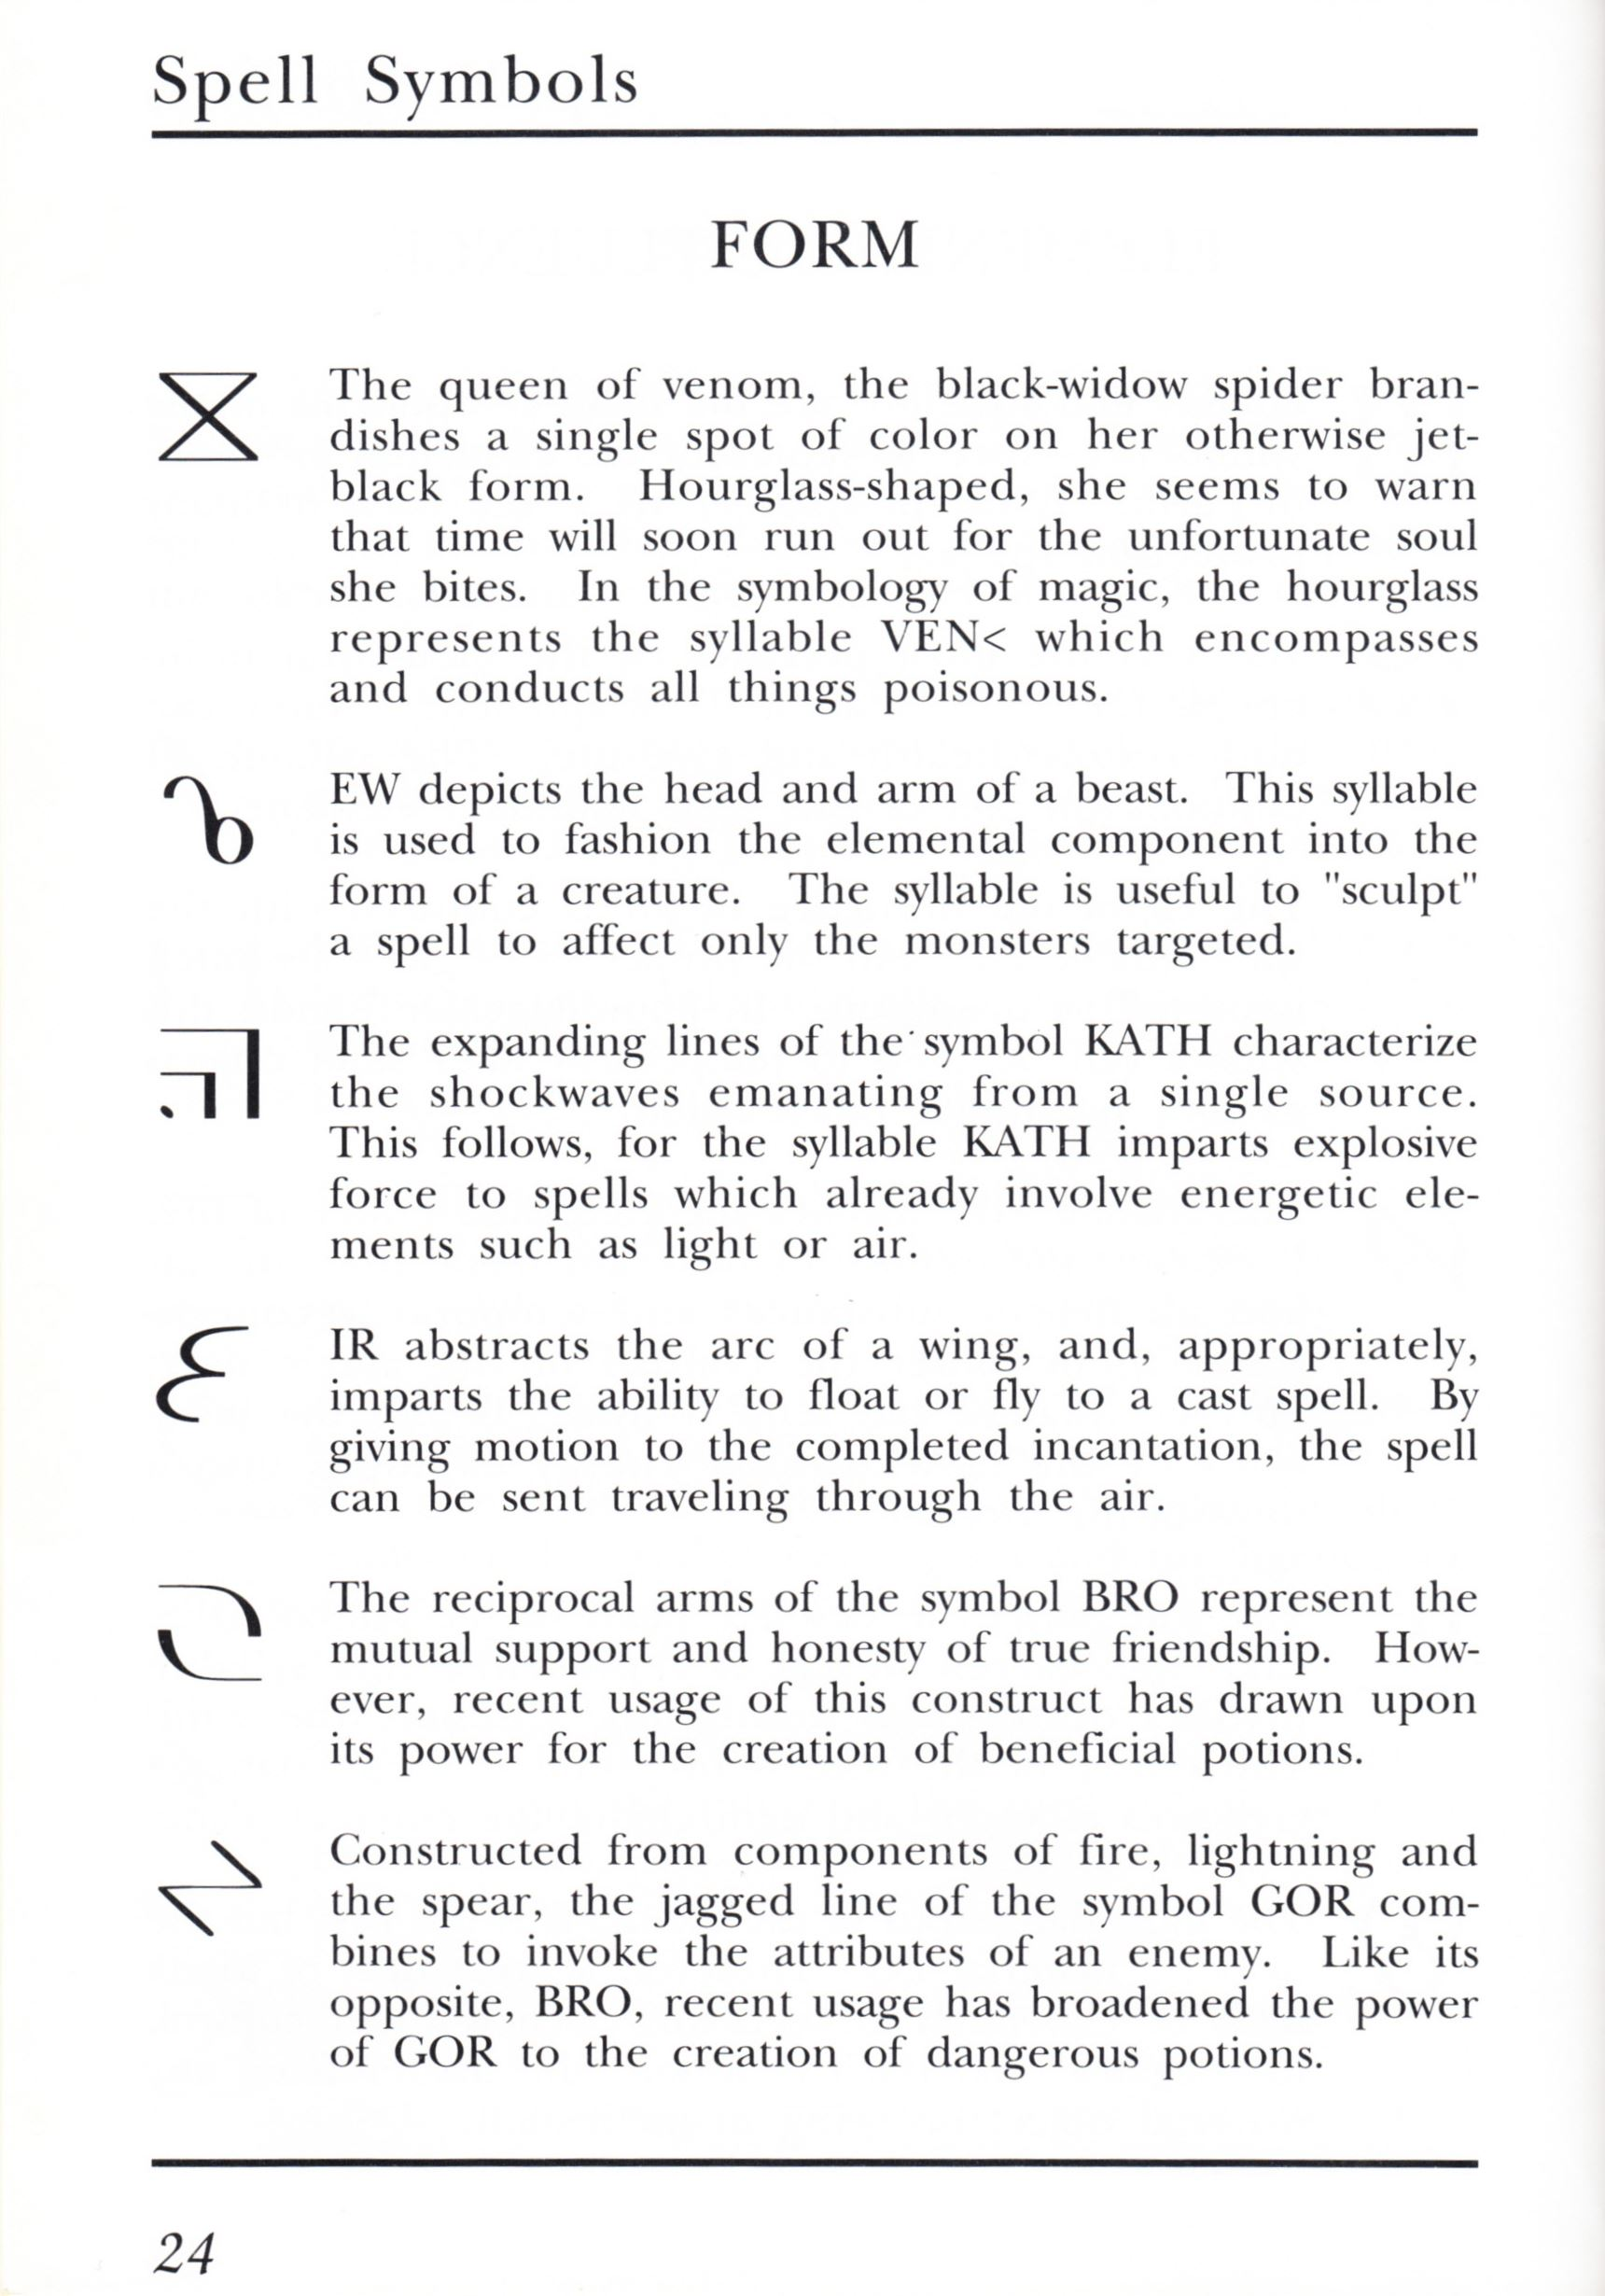 Game - Dungeon Master - UK - PC - Psygnosis - Manual - Page 044 - Scan